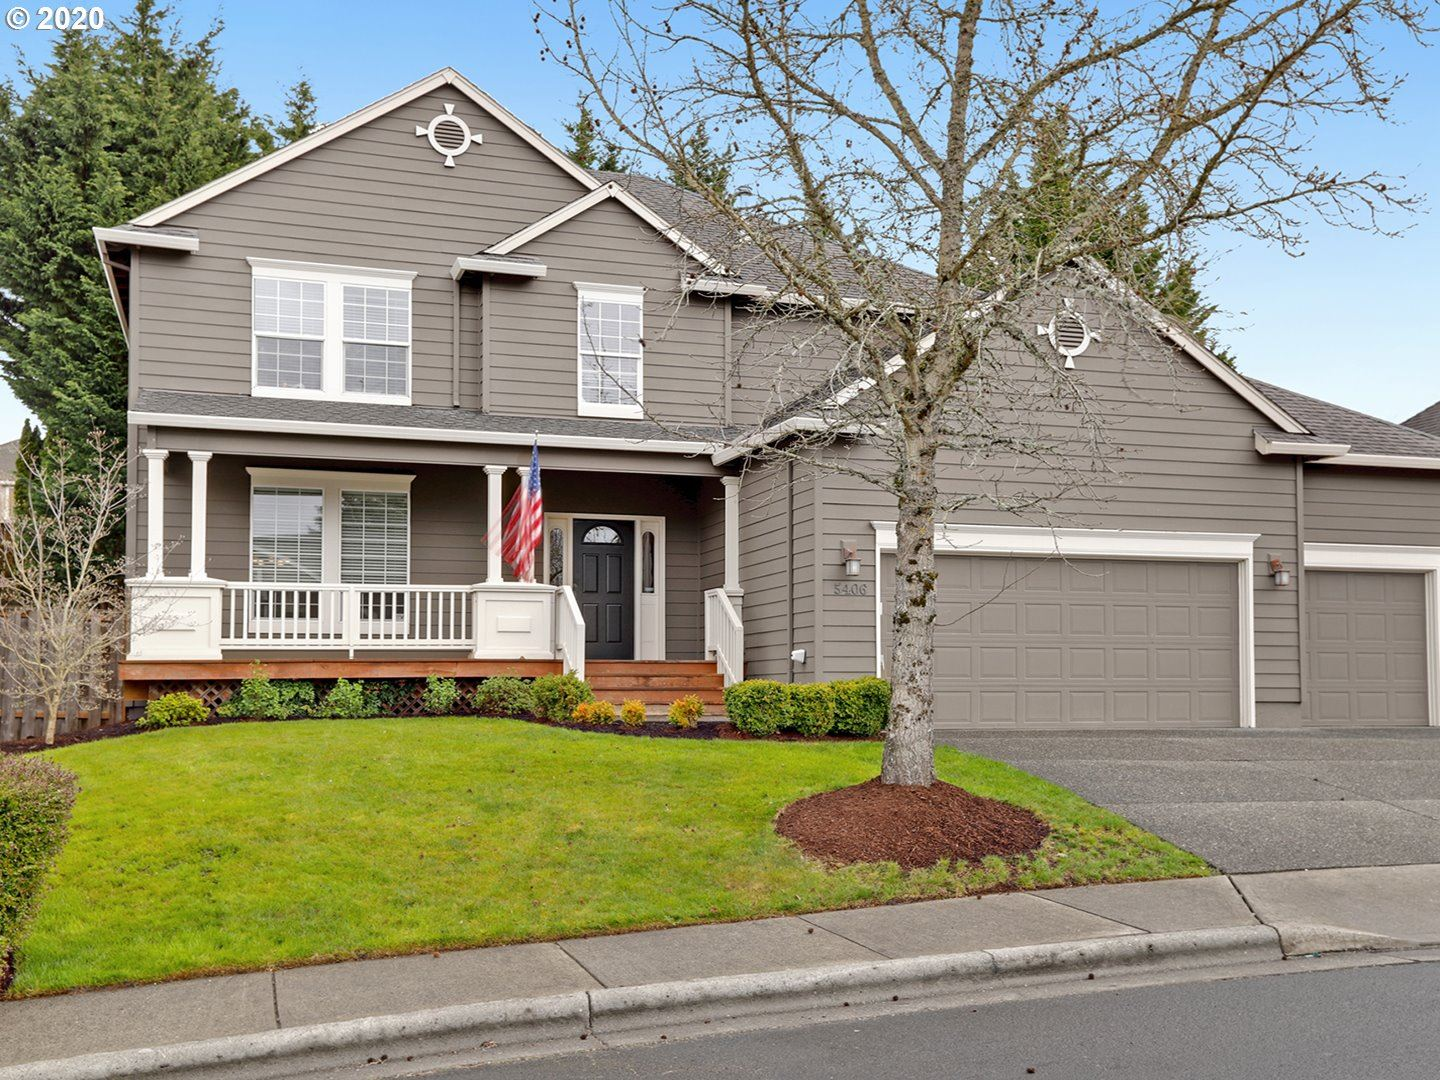 5406 NW 146TH AVE, Portland, OR 97229 - MLS#: 20139351